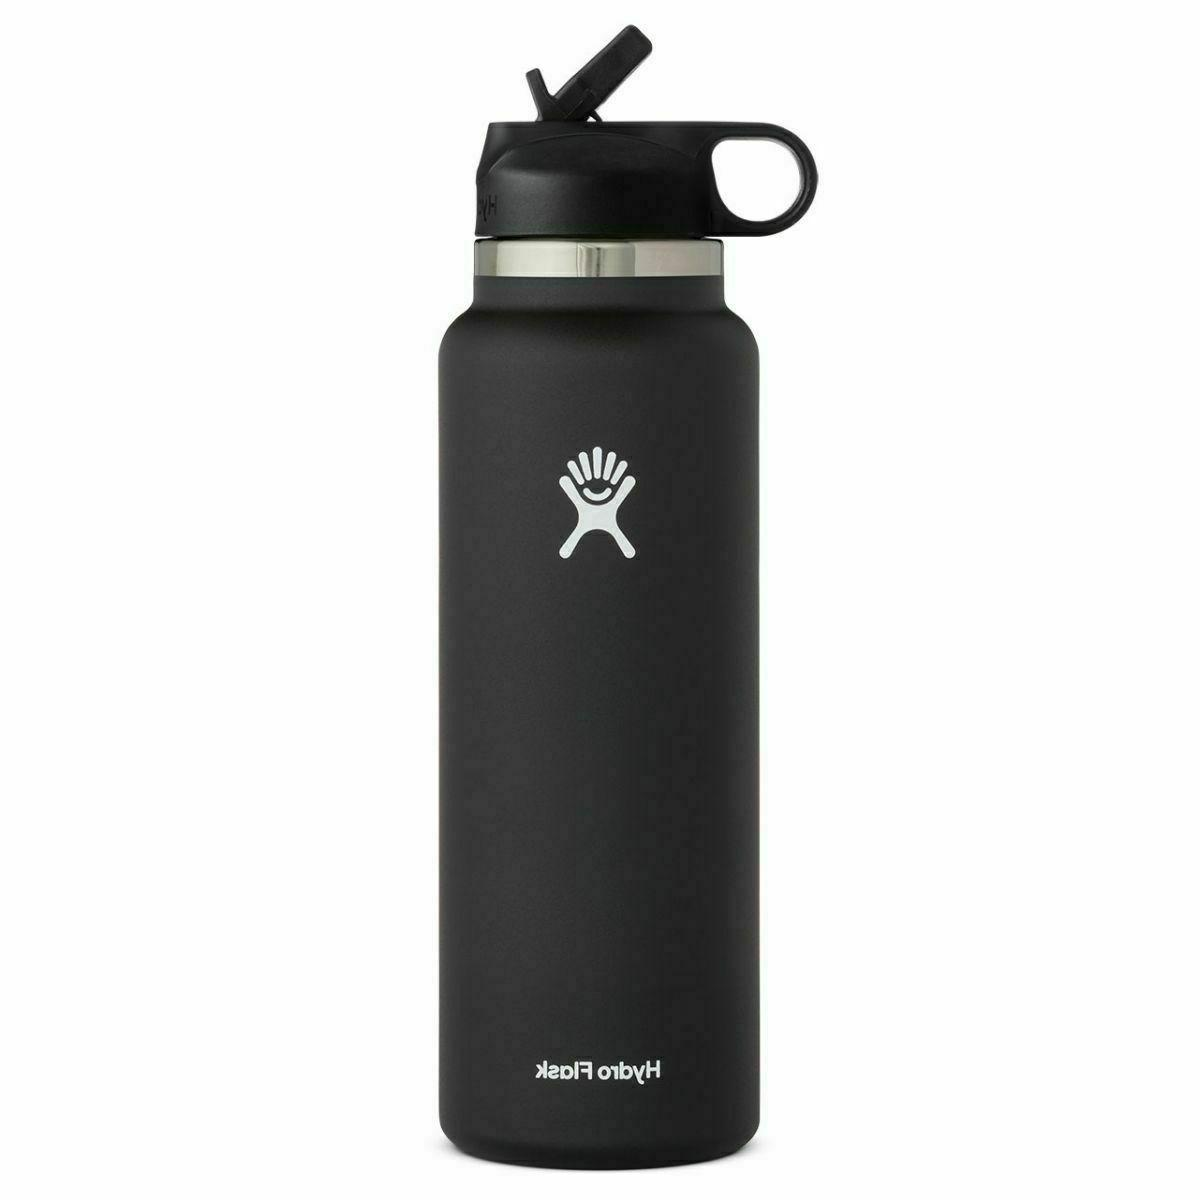 32oz Steel Bottle with Straw Lid